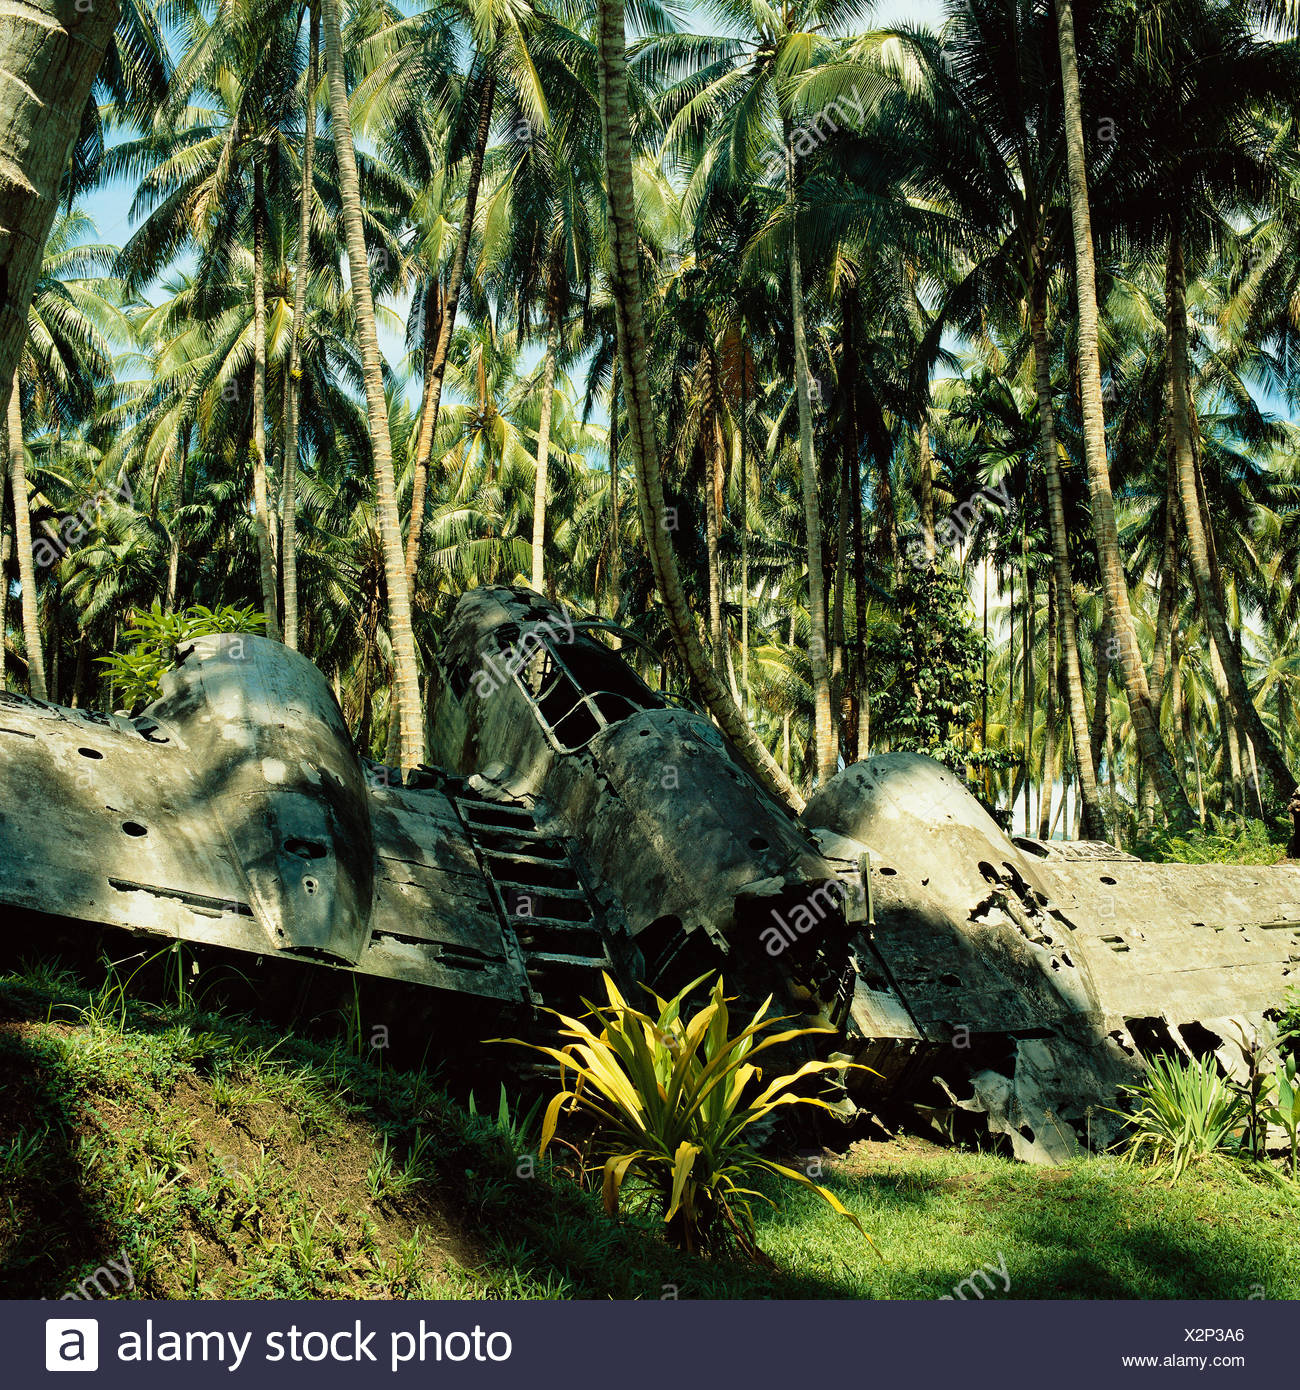 Airplane Wreckage New Guinea - Stock Image